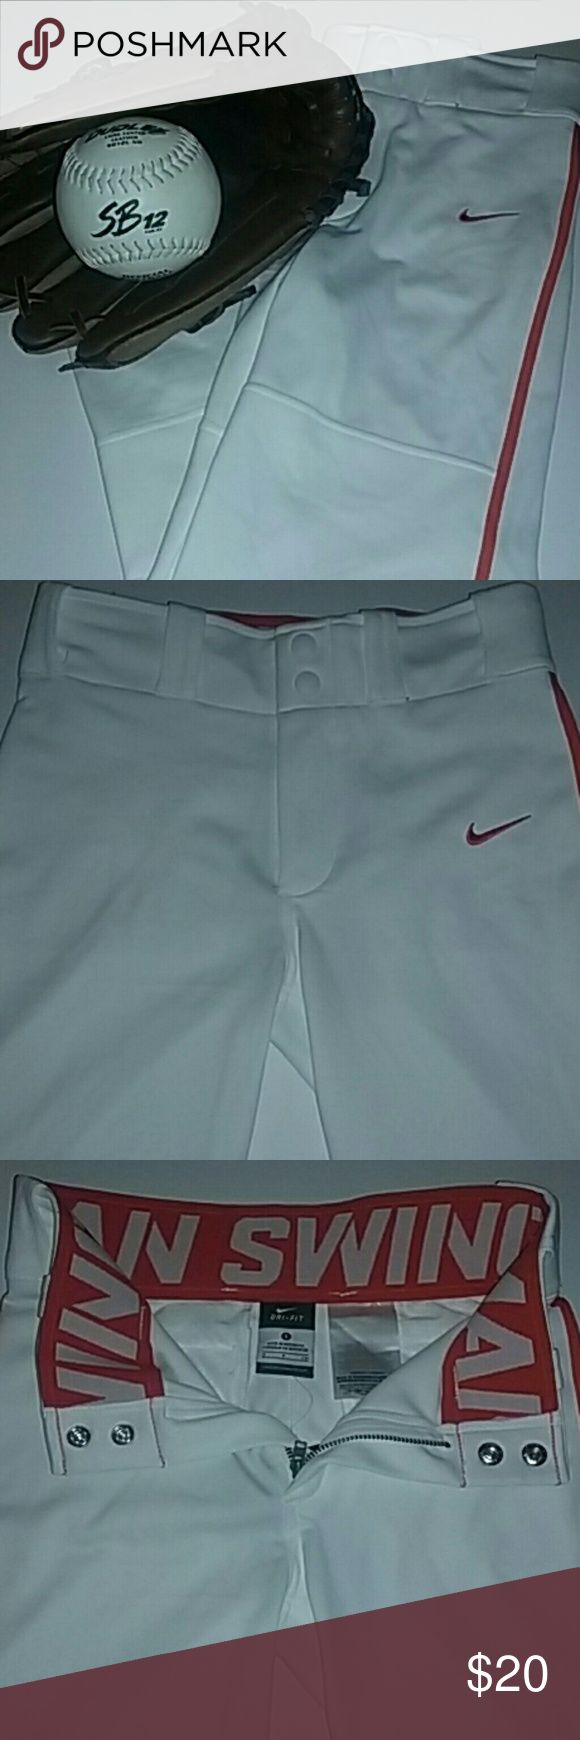 Boys Nike Baseball Pants Boys or Unisex Baseball/Softball Pants NIKE DRI-FIT Size Small Two snap buttons & zipper Two back pockets Color: White/Orange 100% Polyester  Brand new with tags. $35.00 ⚾⚾⚾⚾⚾⚾⚾⚾⚾⚾⚾ Great for practice or game day! Nike Costumes Seasonal